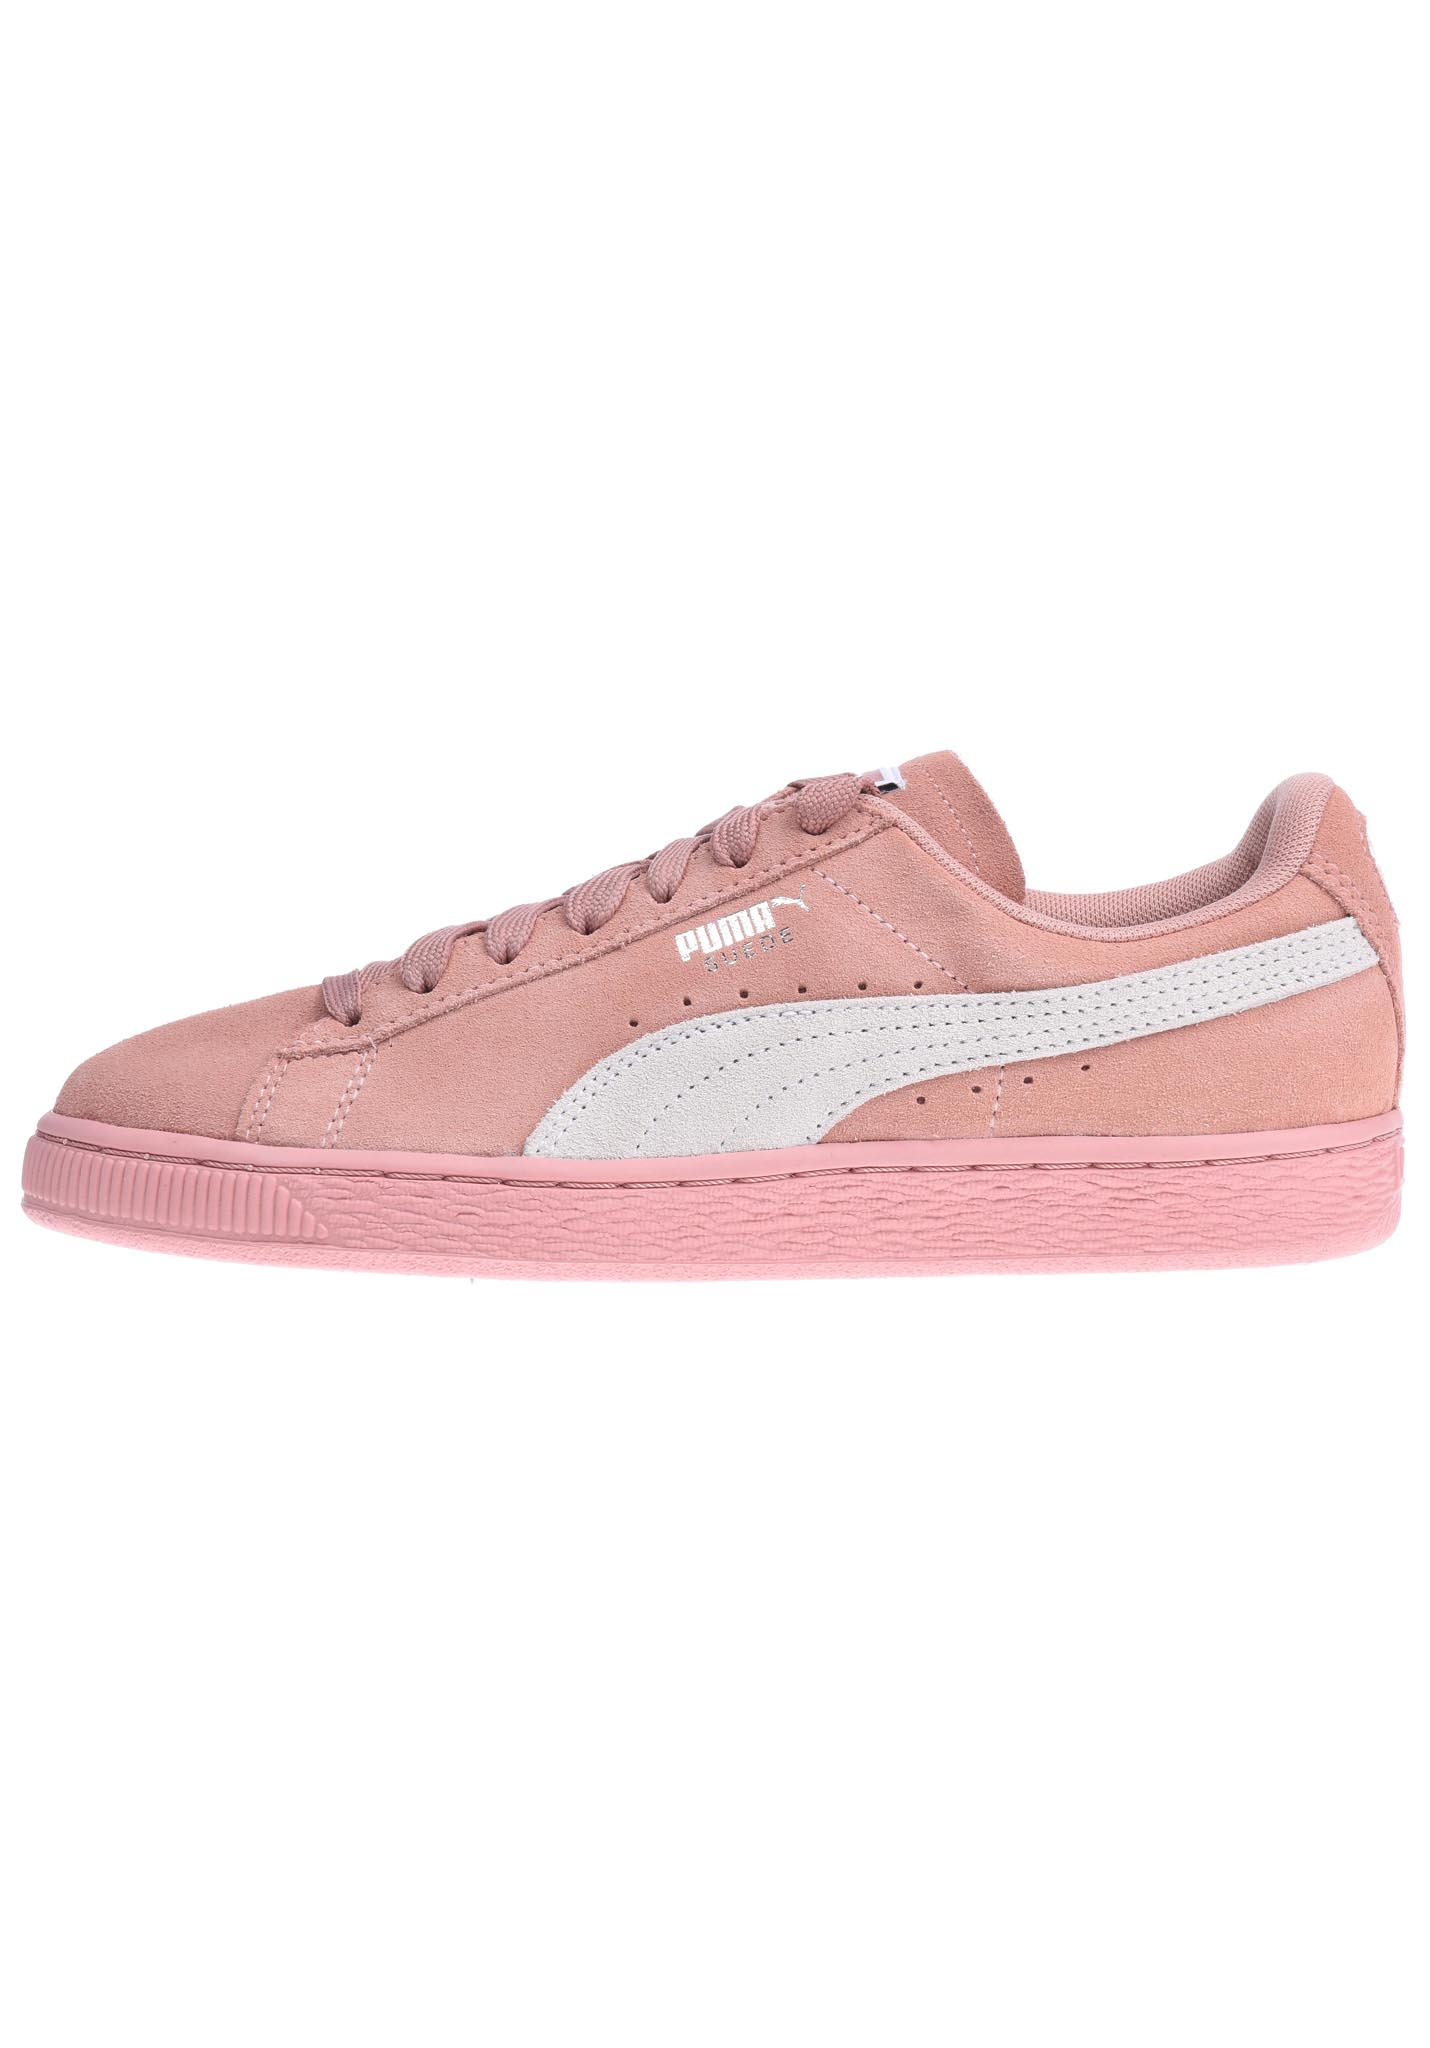 065cf221938 Puma Suede Classic - Sneakers voor Dames - Roze - Planet Sports